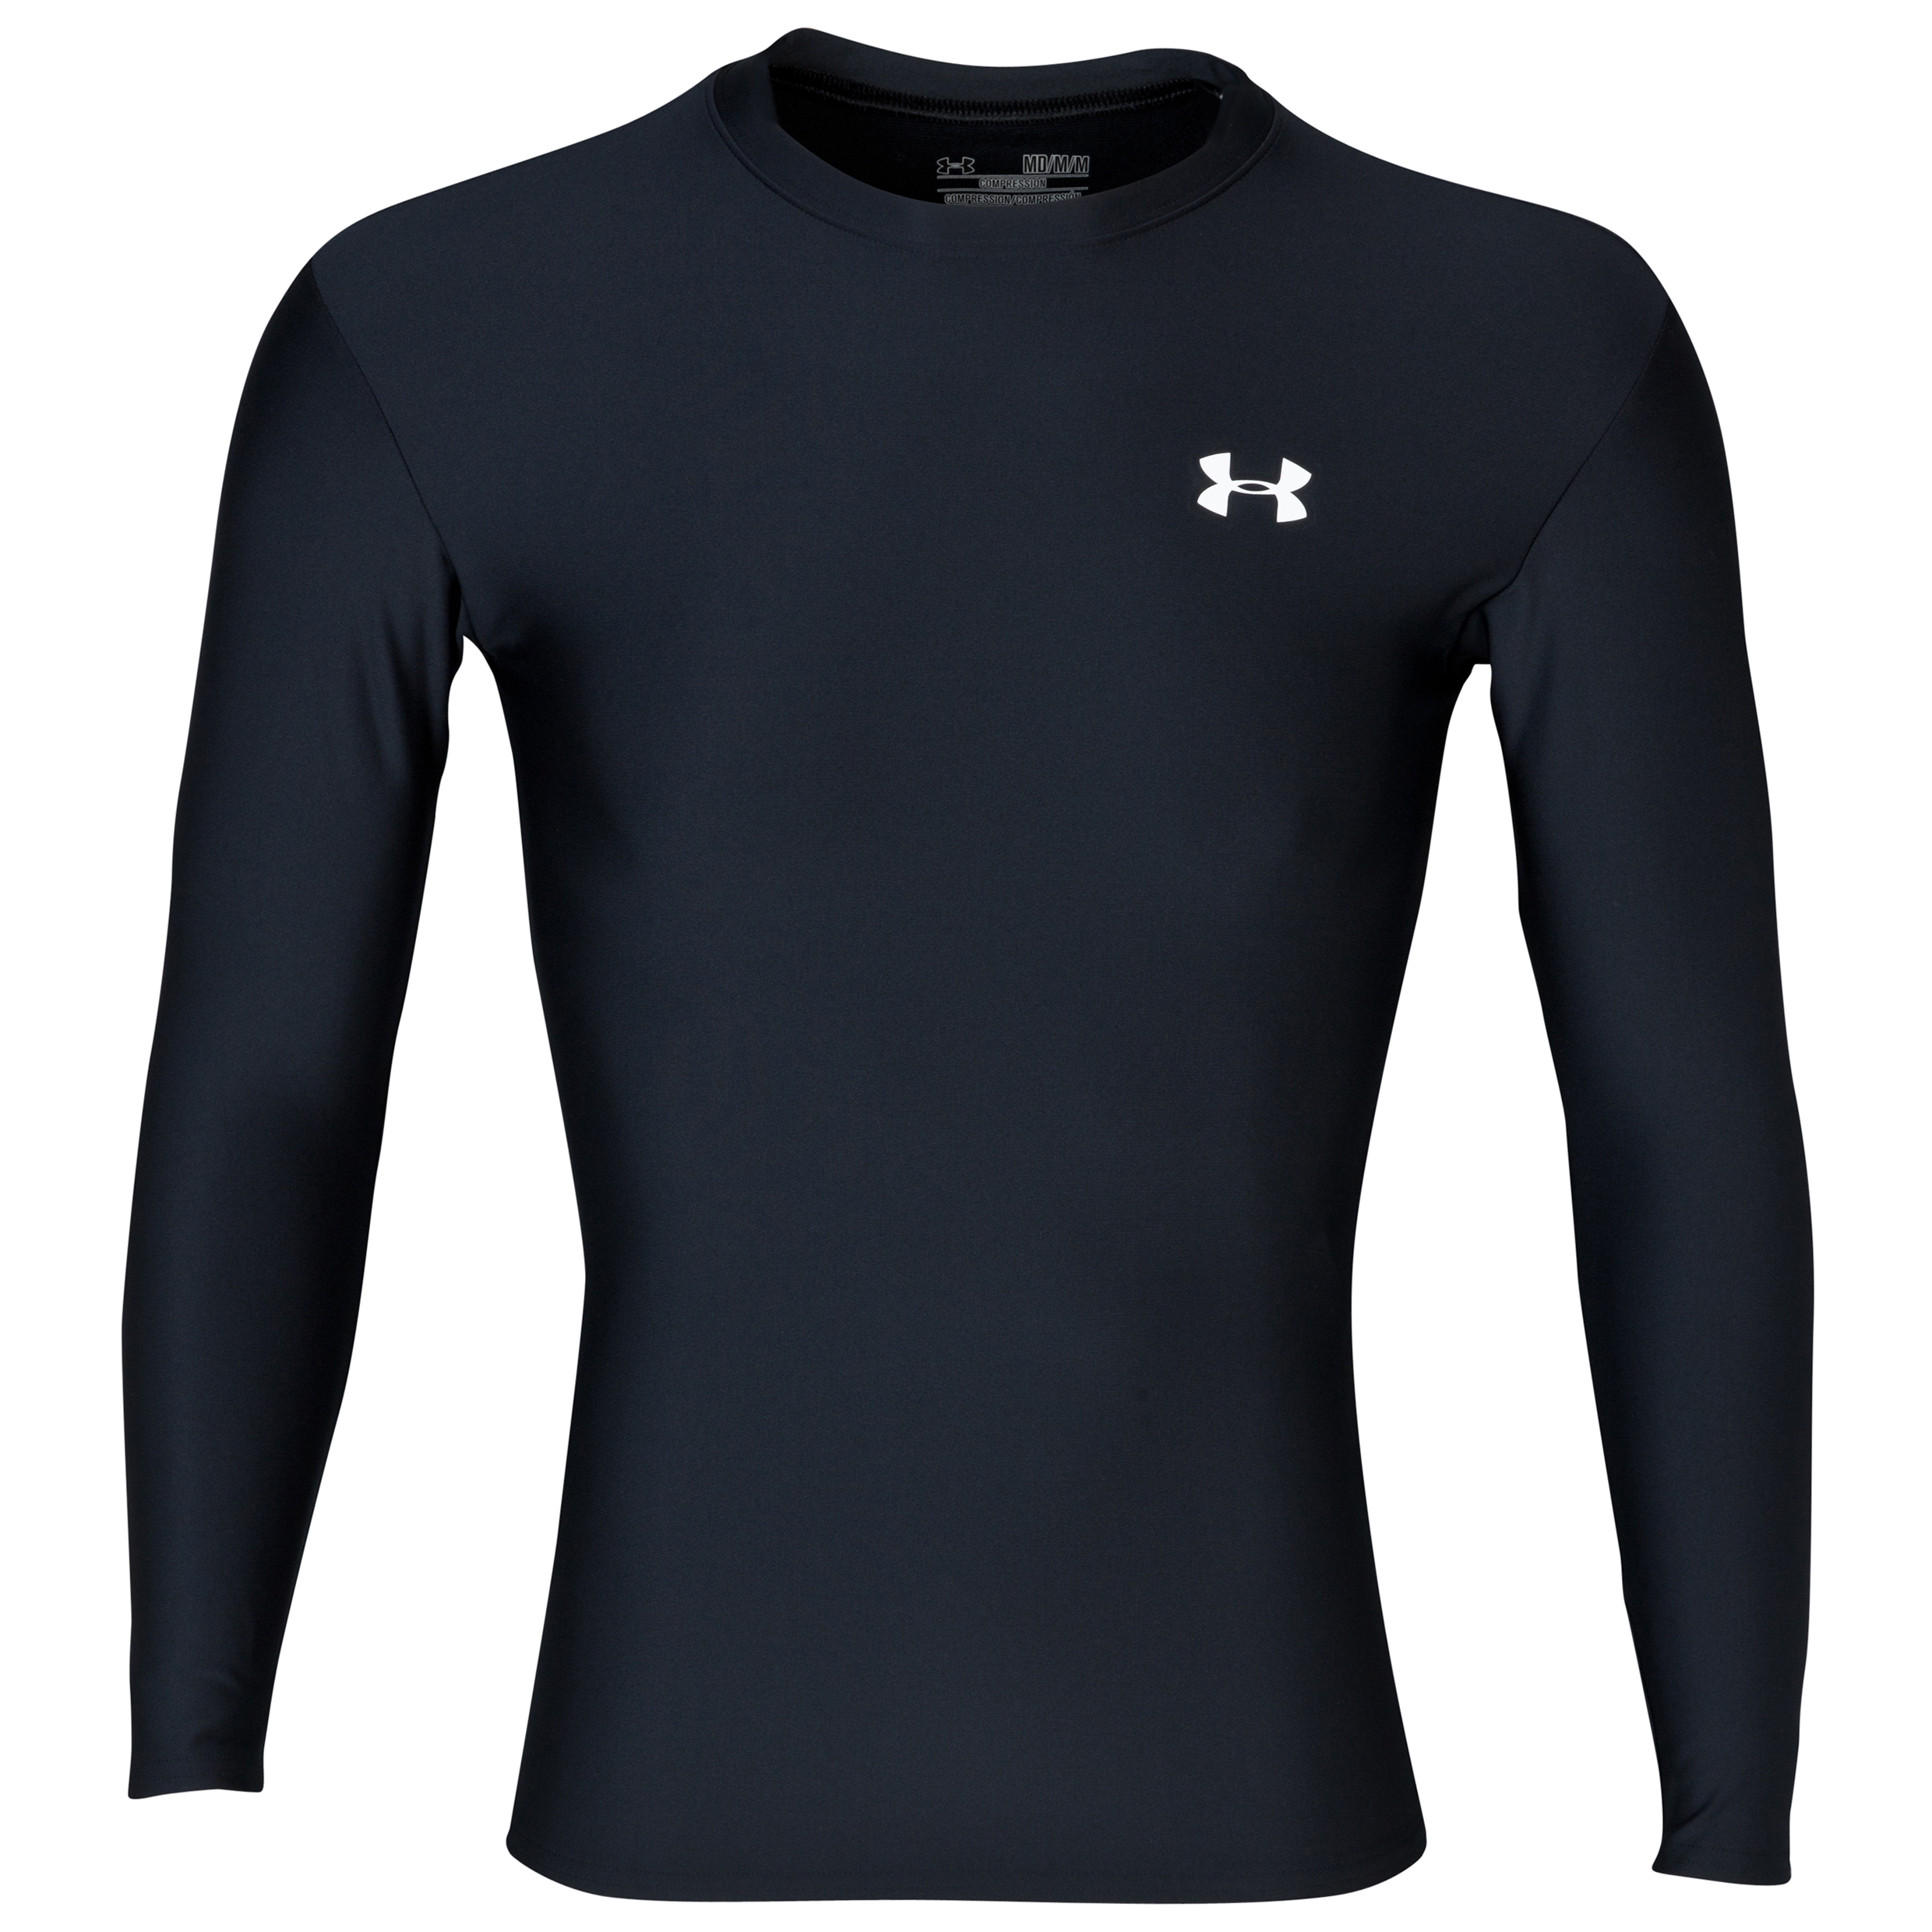 Under Armour Evo Coldgear crew 11 Base Layer Top - Long Sleeve Black